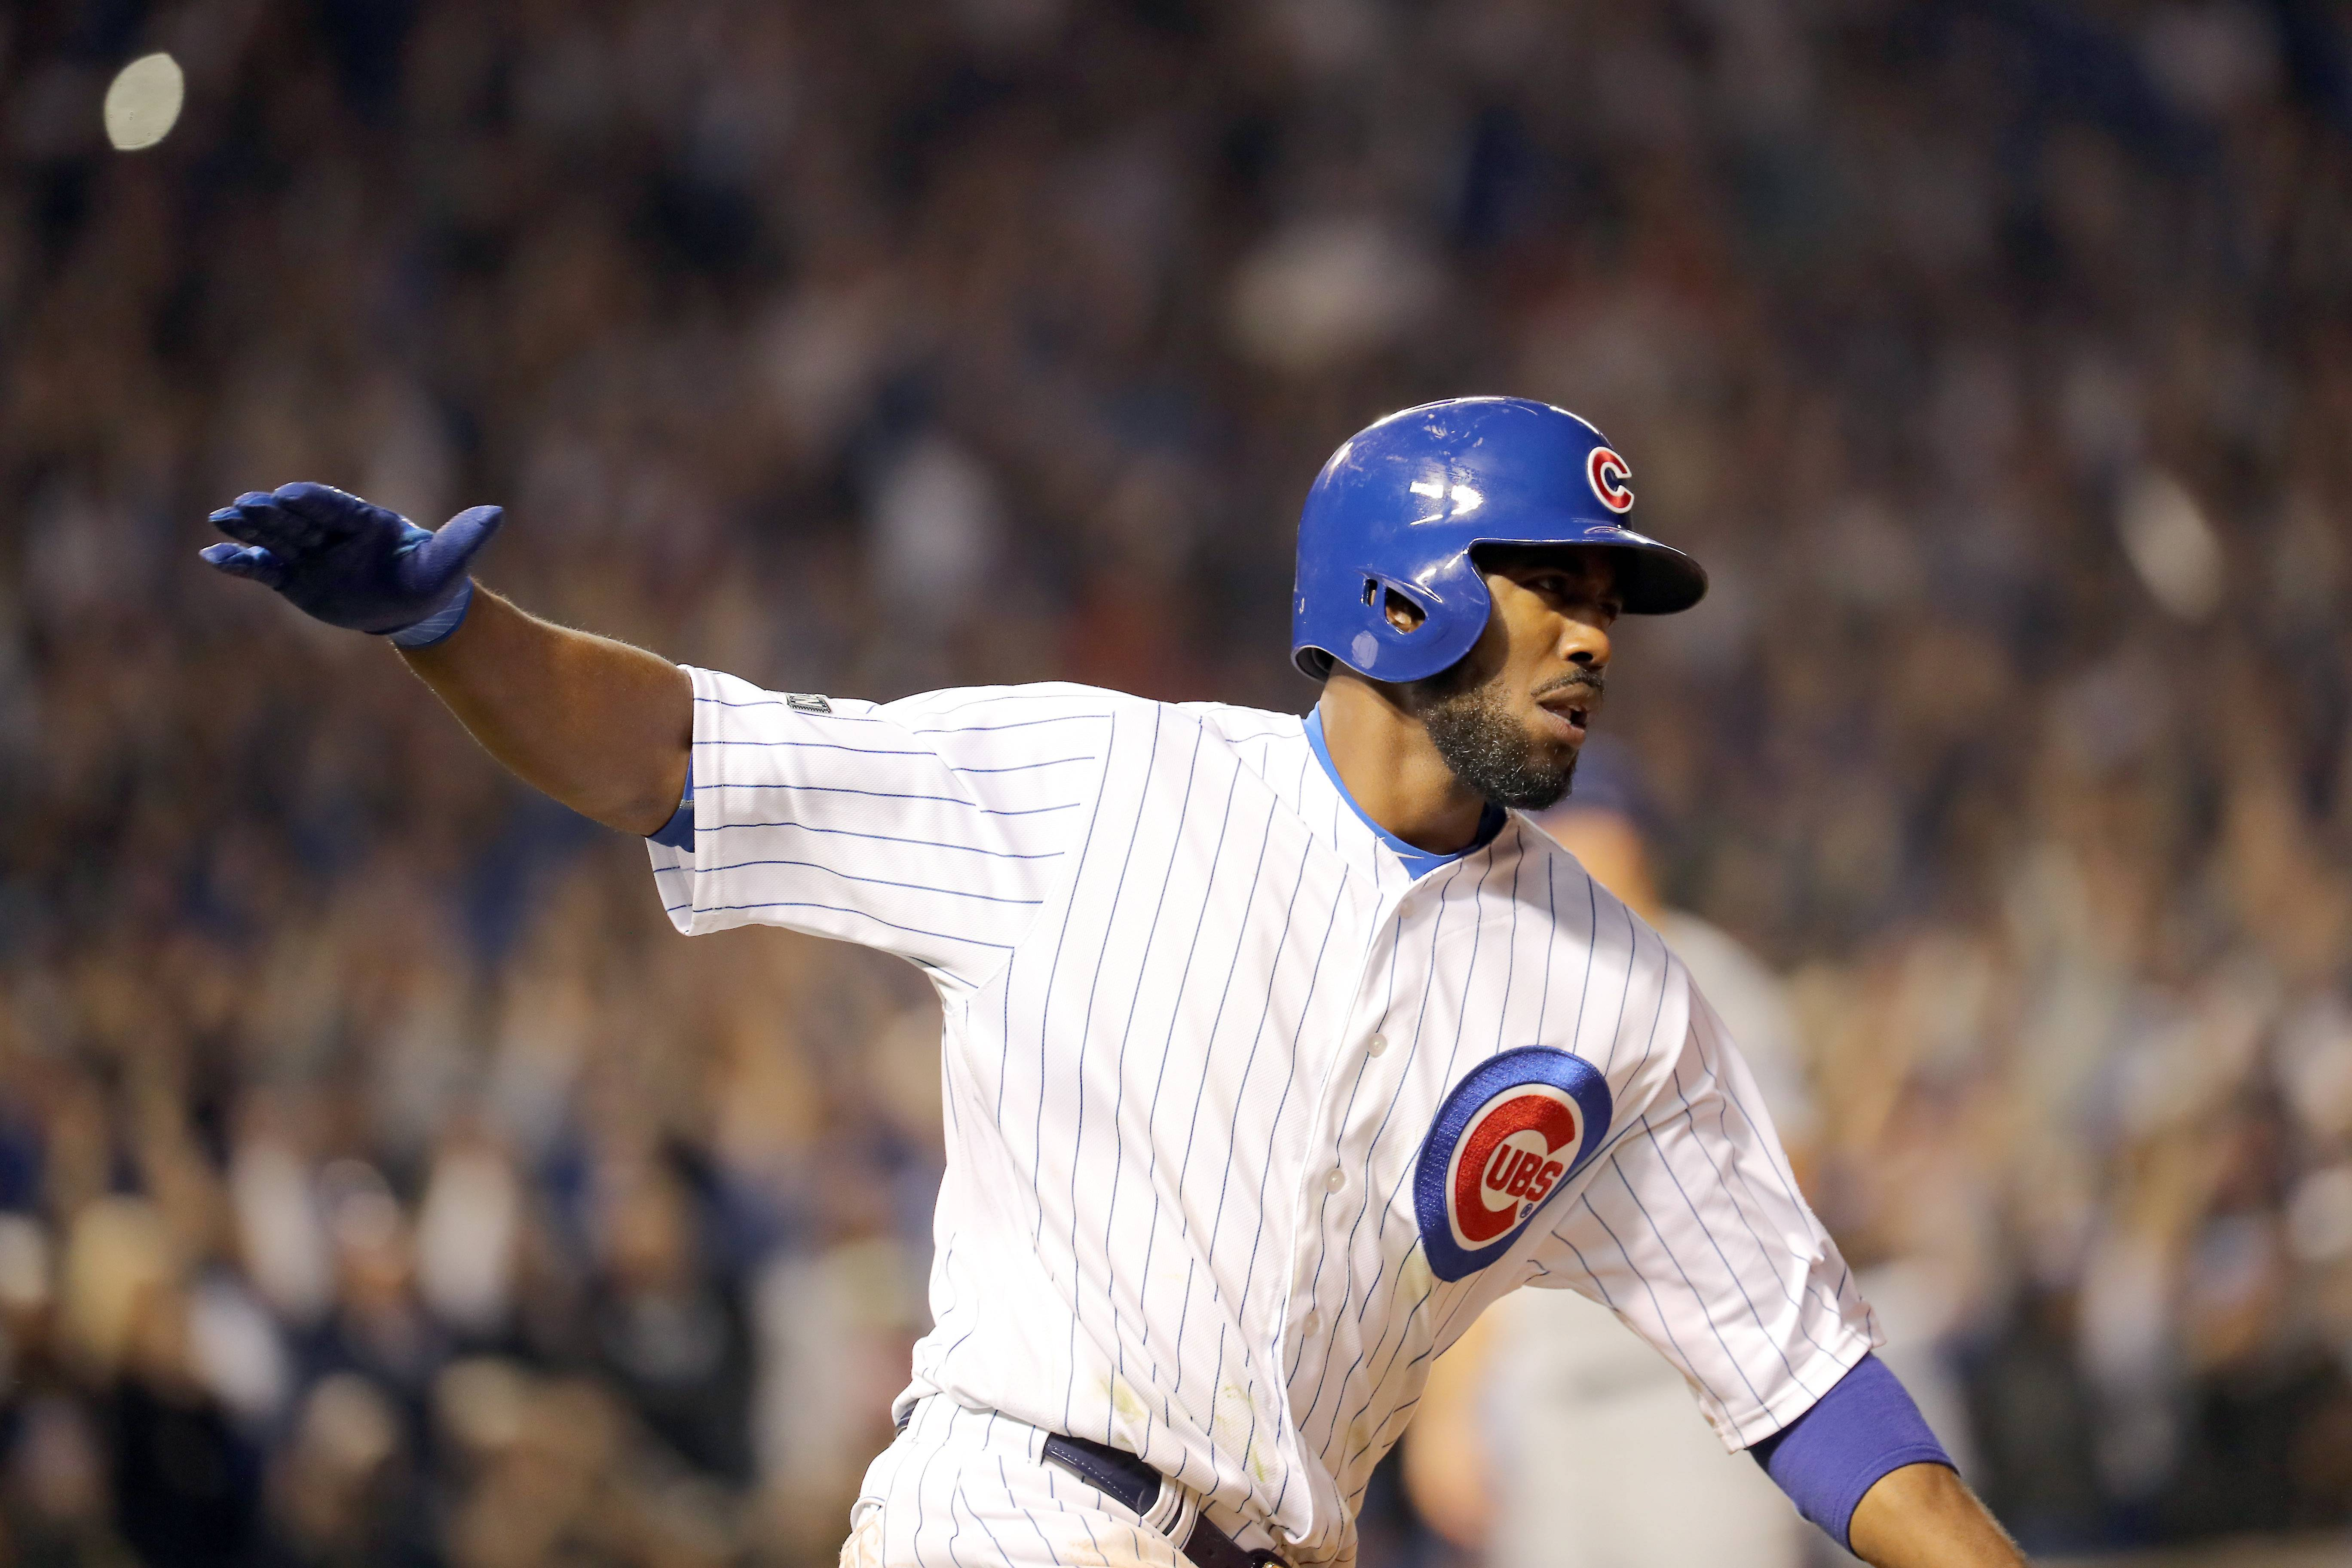 Through 10 postseason games, Chicago Cubs center fielder Dexter Fowler collected 18 total bases with a .262 batting average.